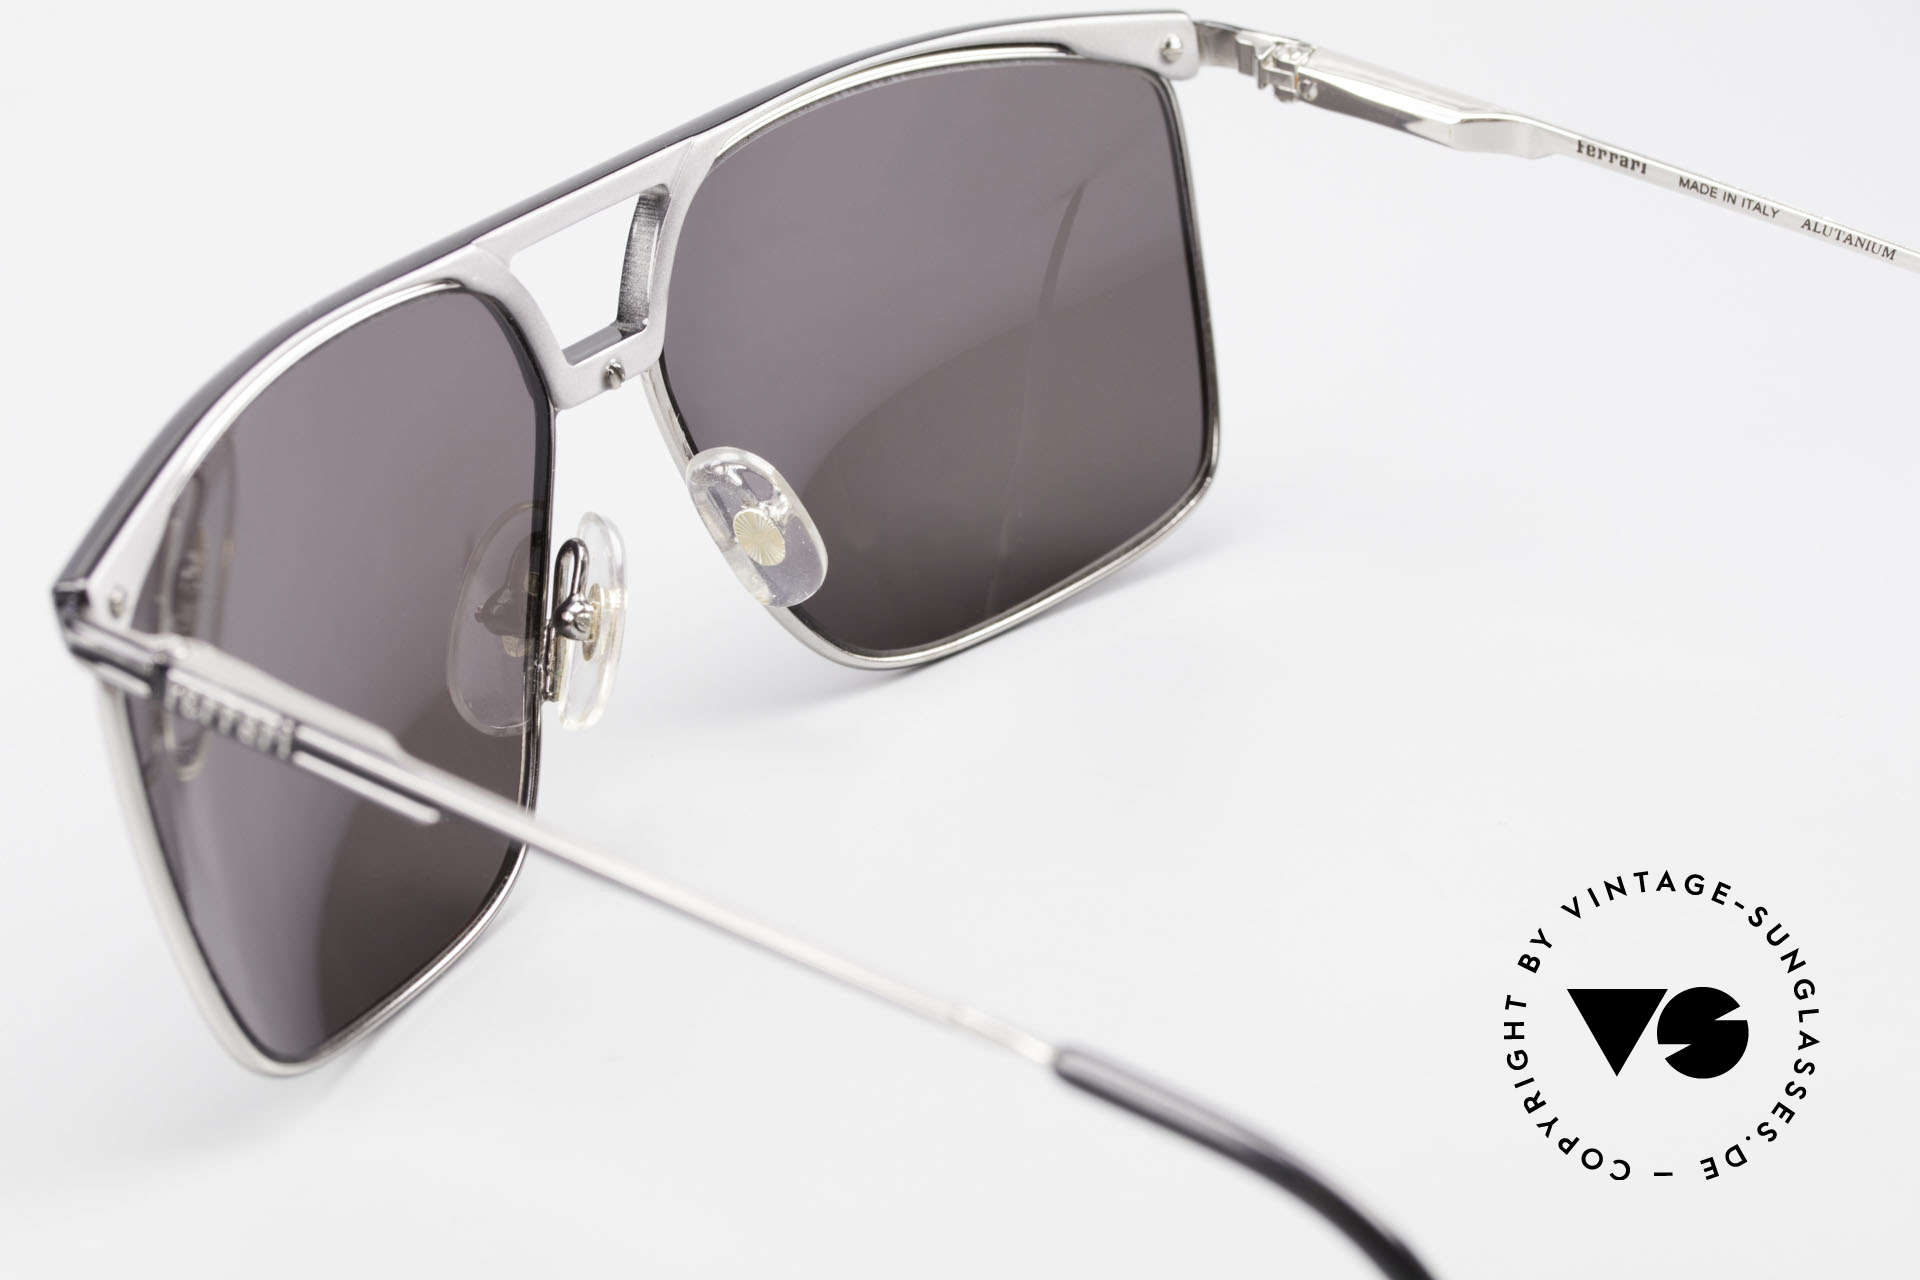 Ferrari F35 X-Large Mirrored Sunglasses, Size: extra large, Made for Men